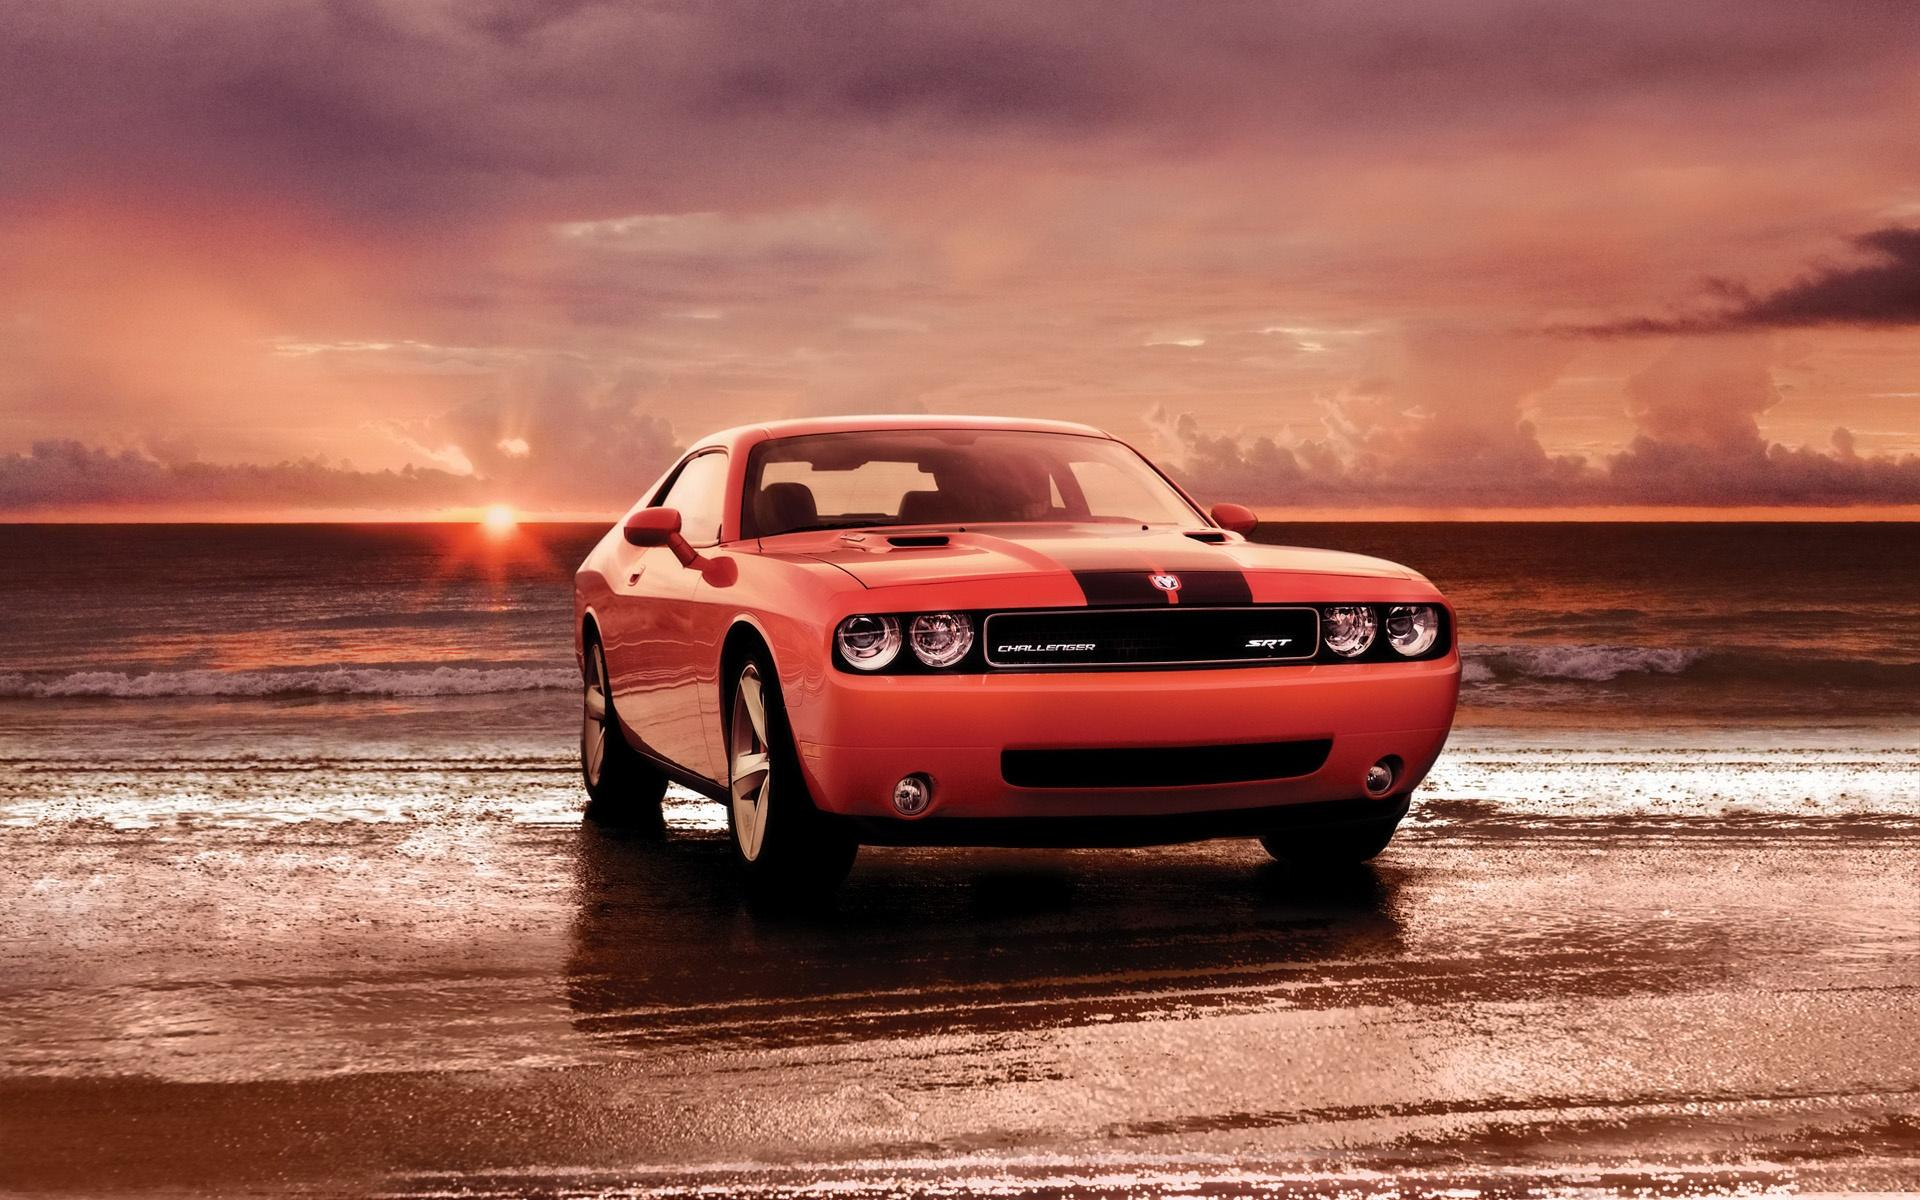 2008 Dodge Challenger Srt8 Front Shore 1920x1200